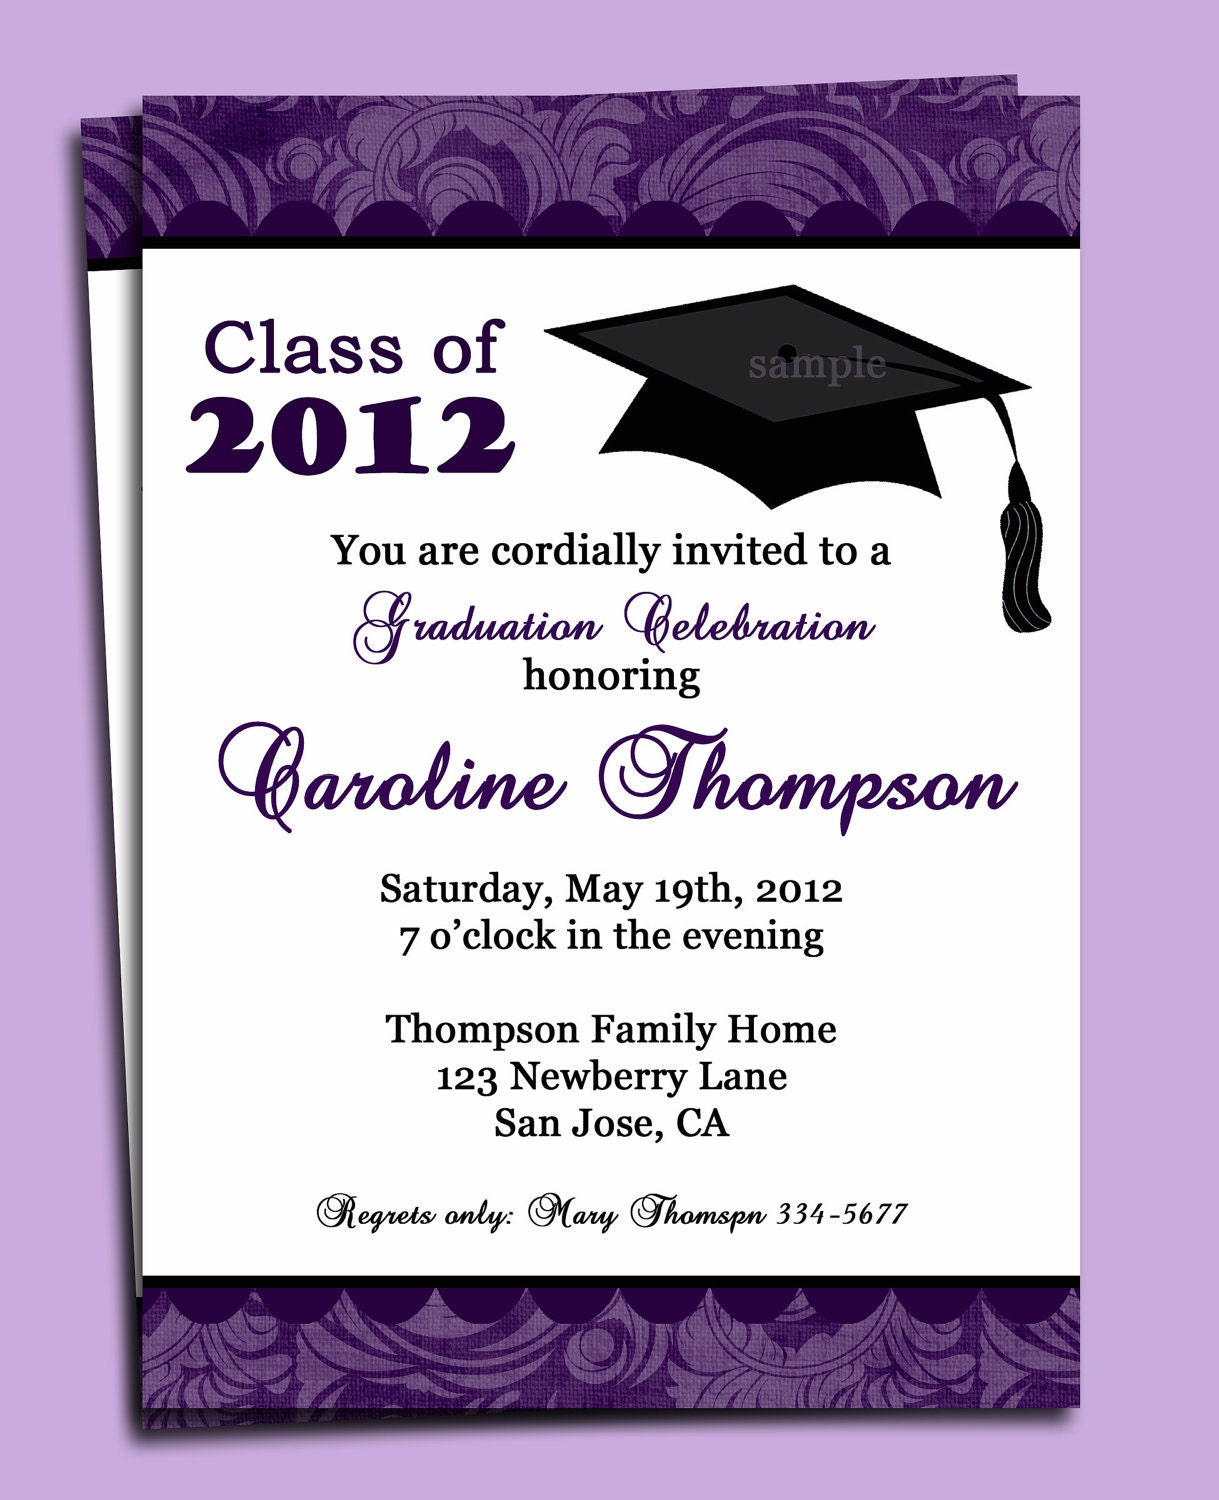 create cards graduation invitations